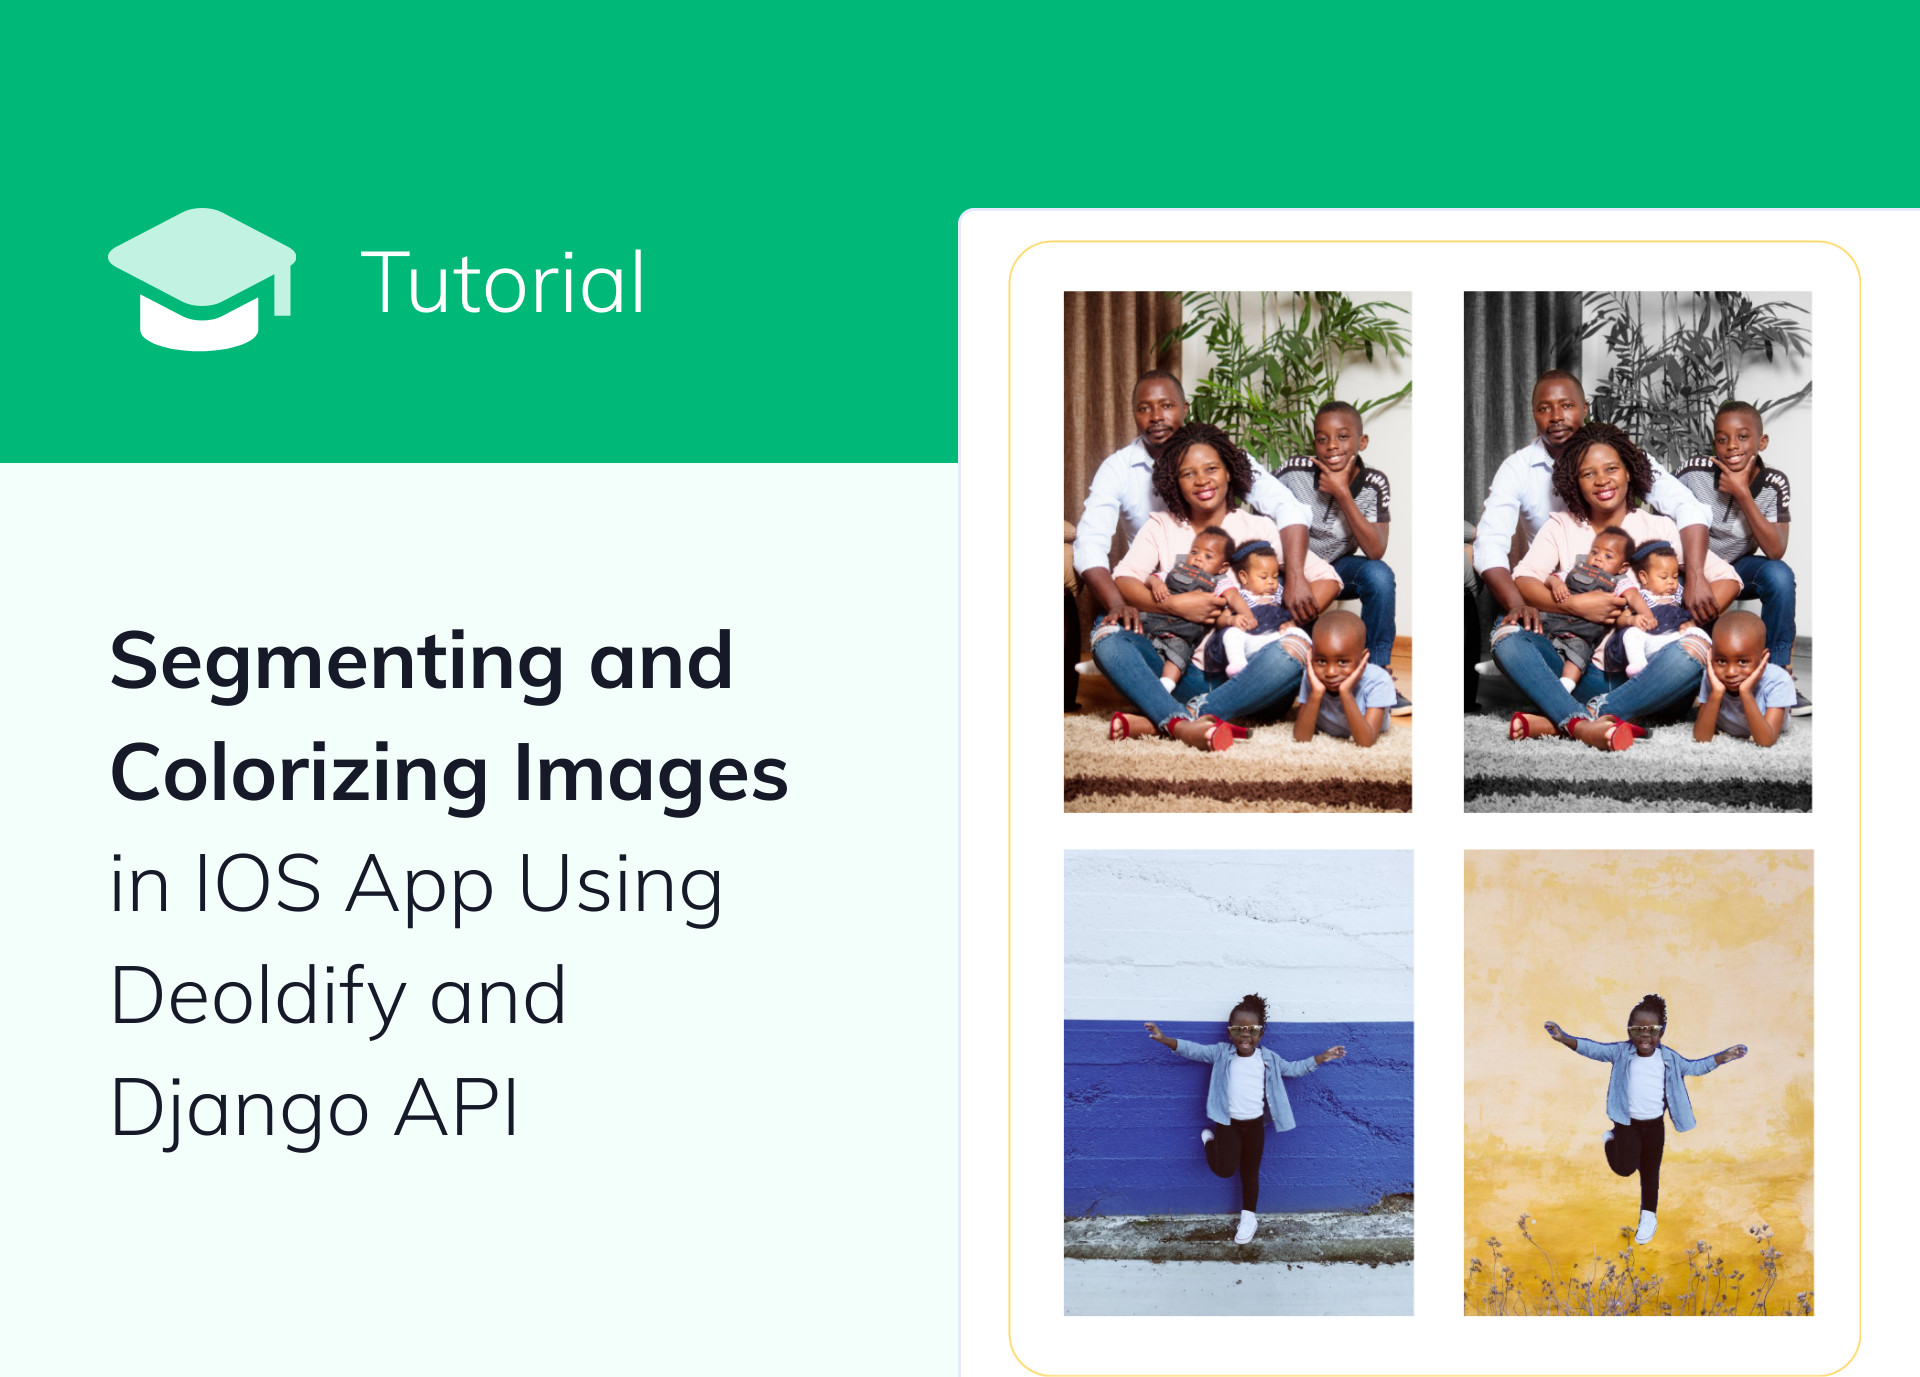 Segmenting and Colorizing Images in IOS App Using Deoldify and Django API